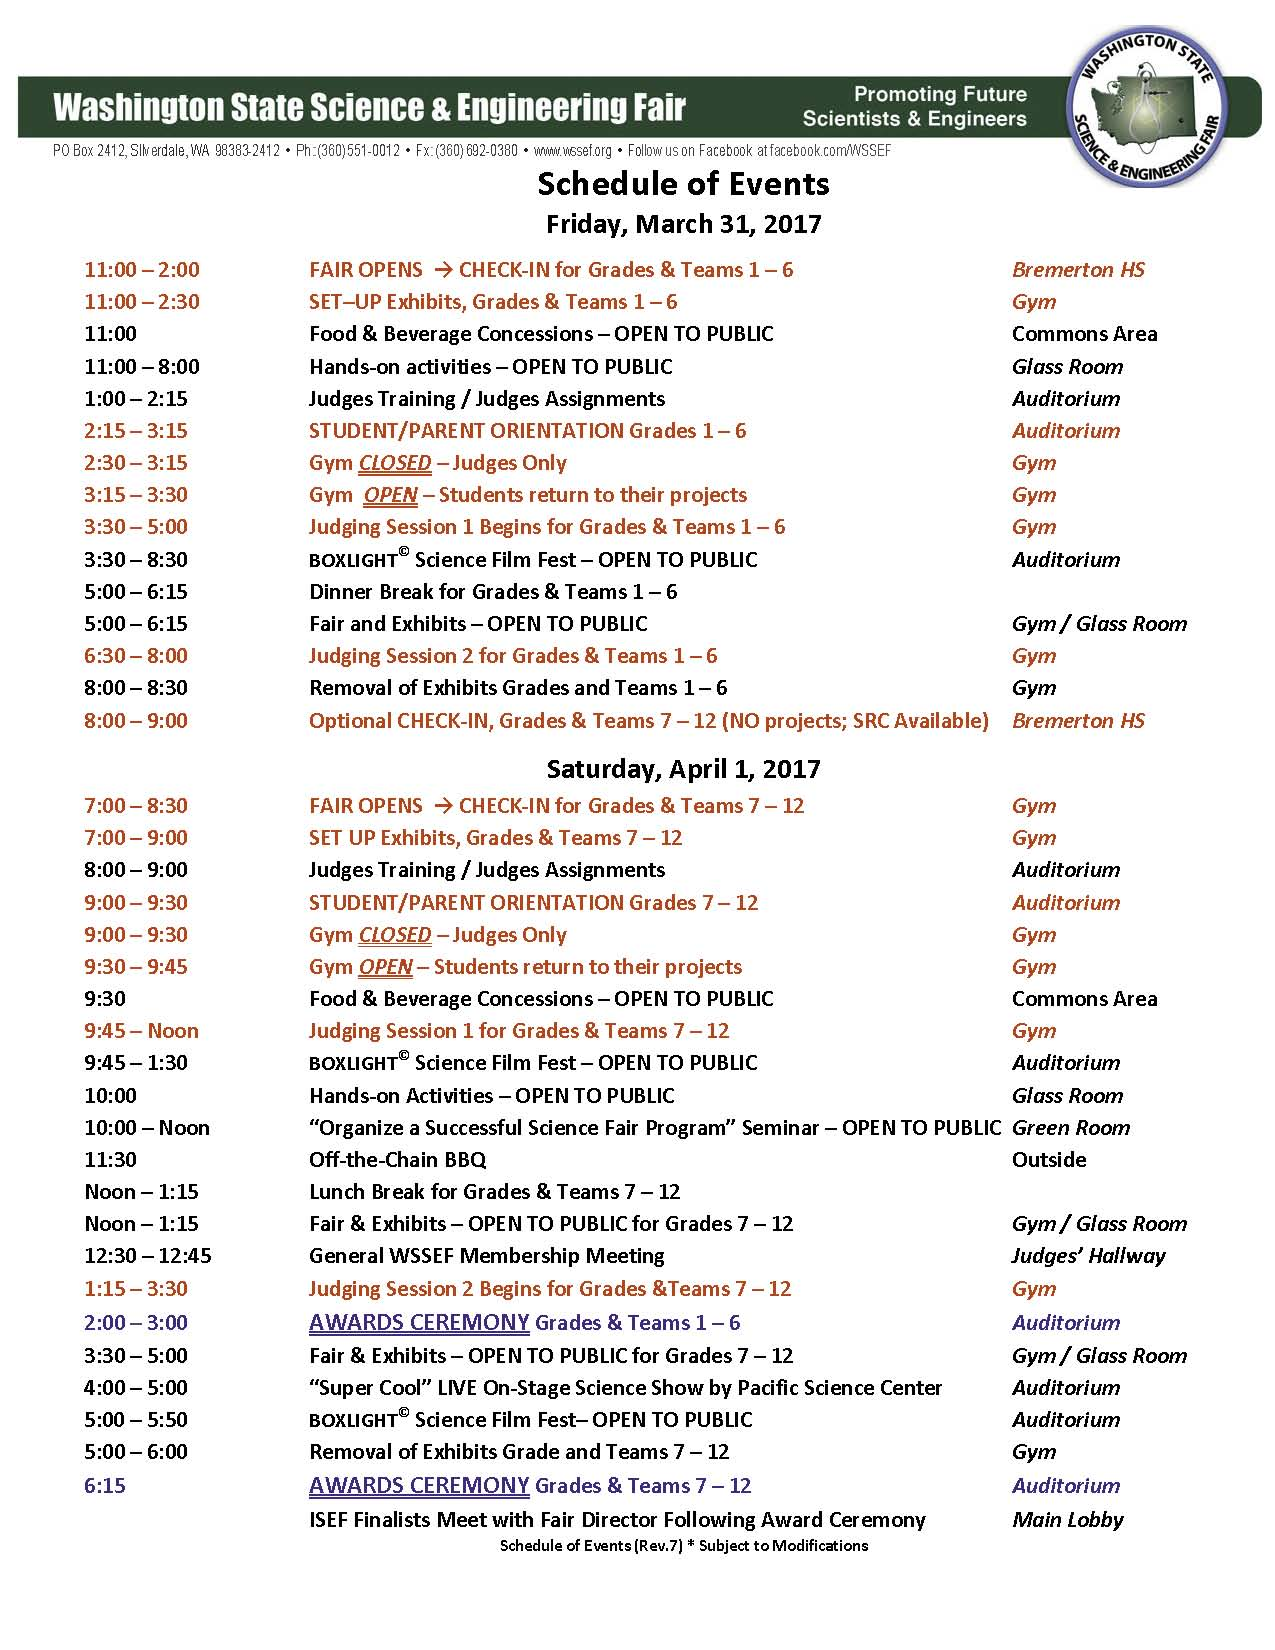 2017 Schedule of Events Rev